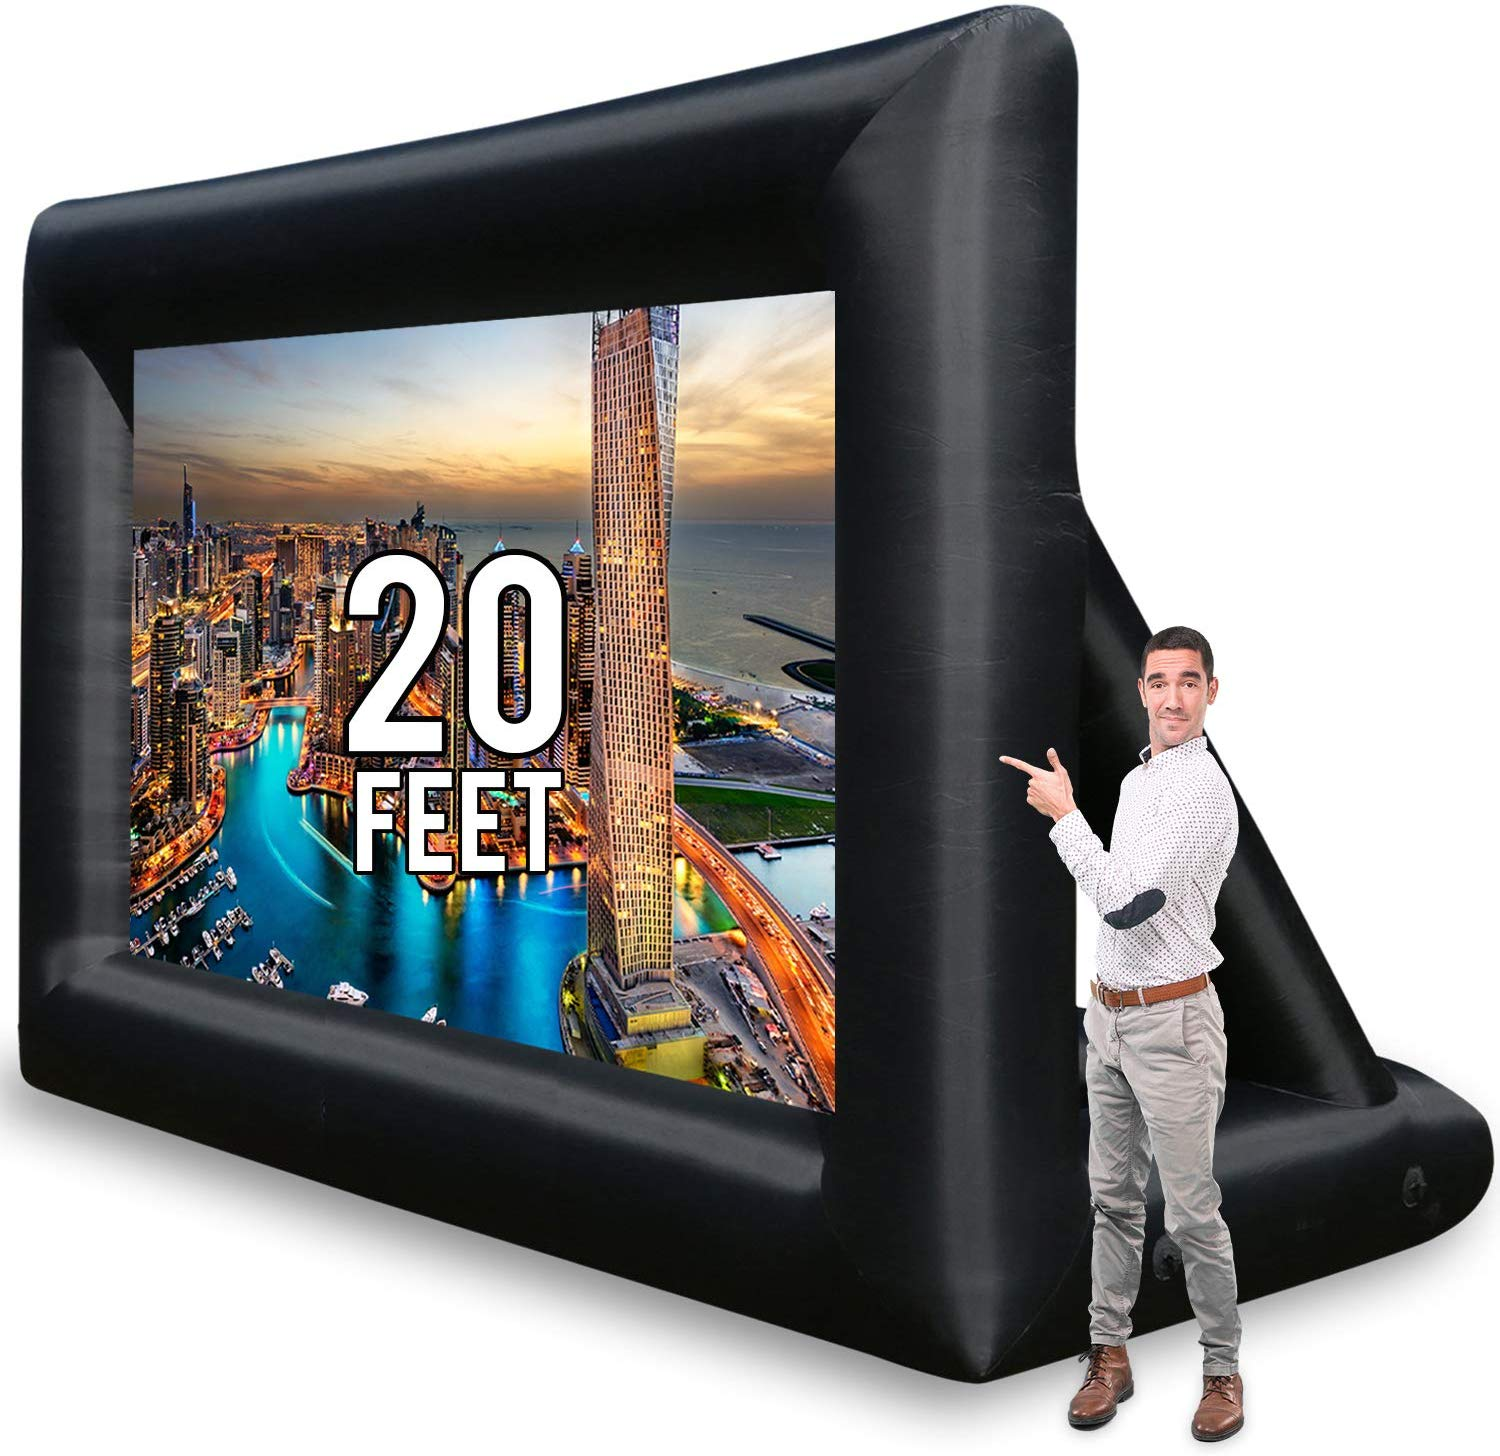 Jumbo 20 Feet Inflatable Outdoor and Indoor Theater Projector Screen